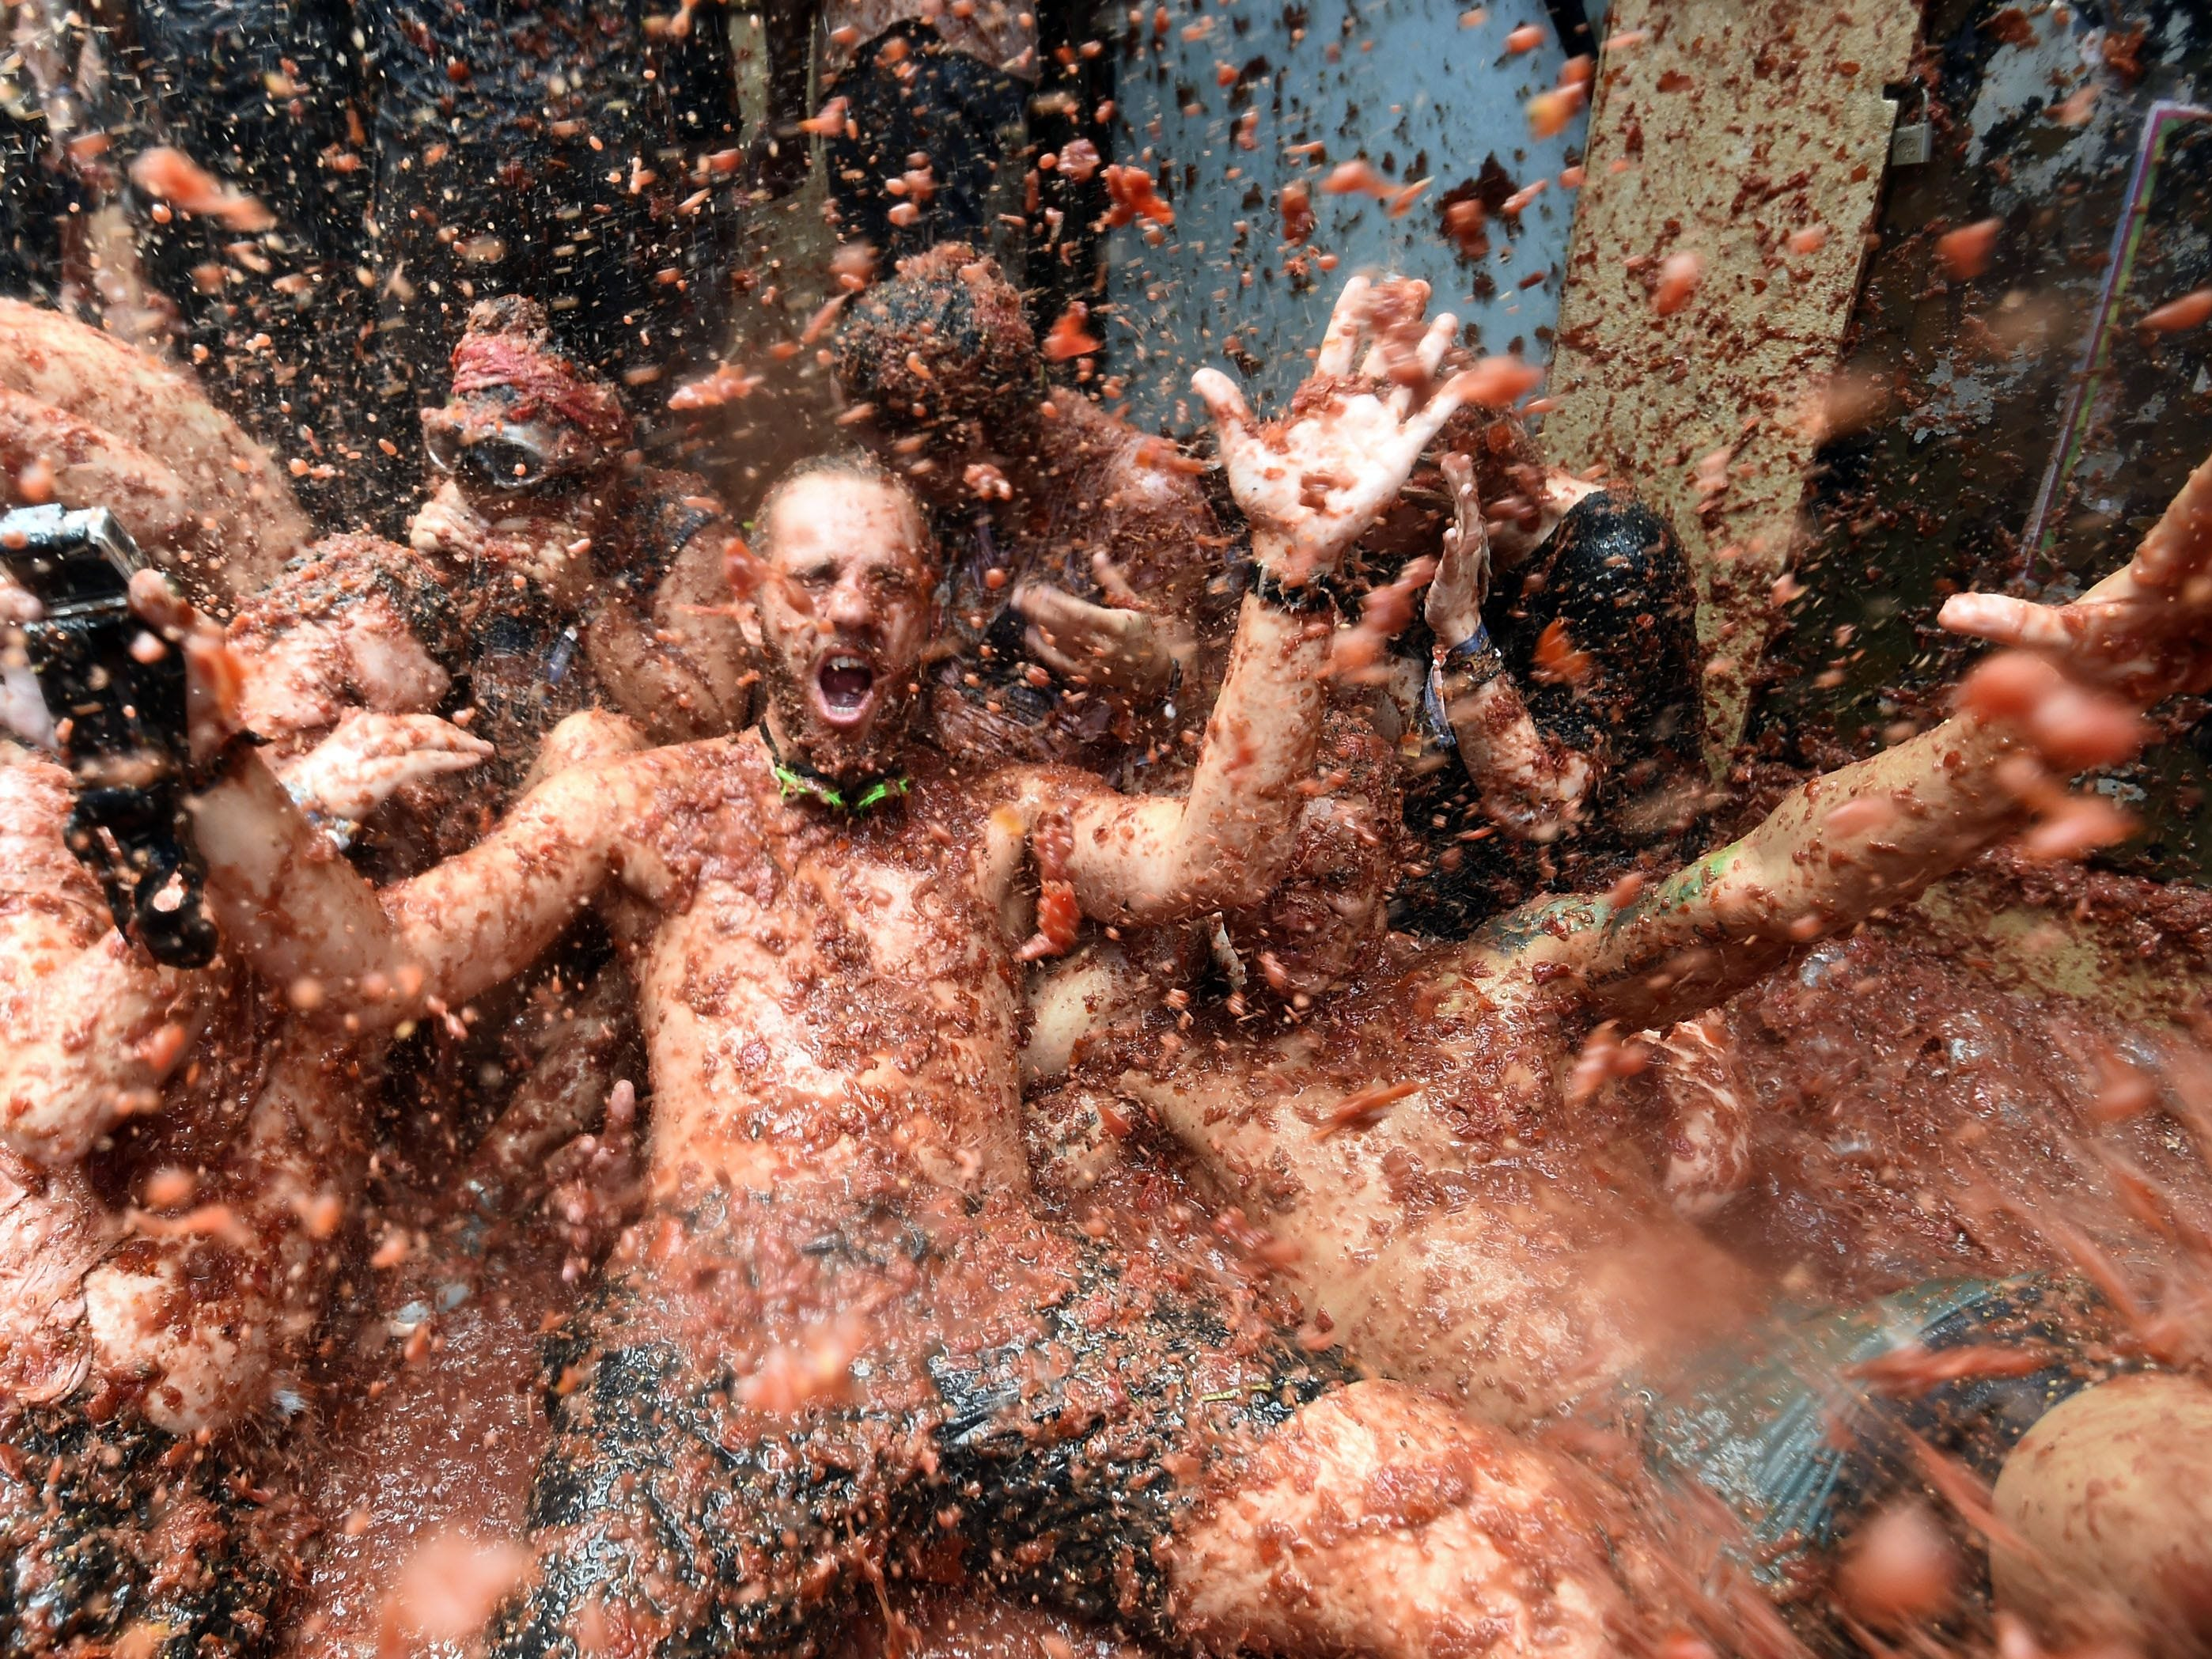 Revelers are pelted with tomatoes as they lie on a tomato puree covered street during the Tomatina festival in Bunol, Spain, Aug. 29, 2018.